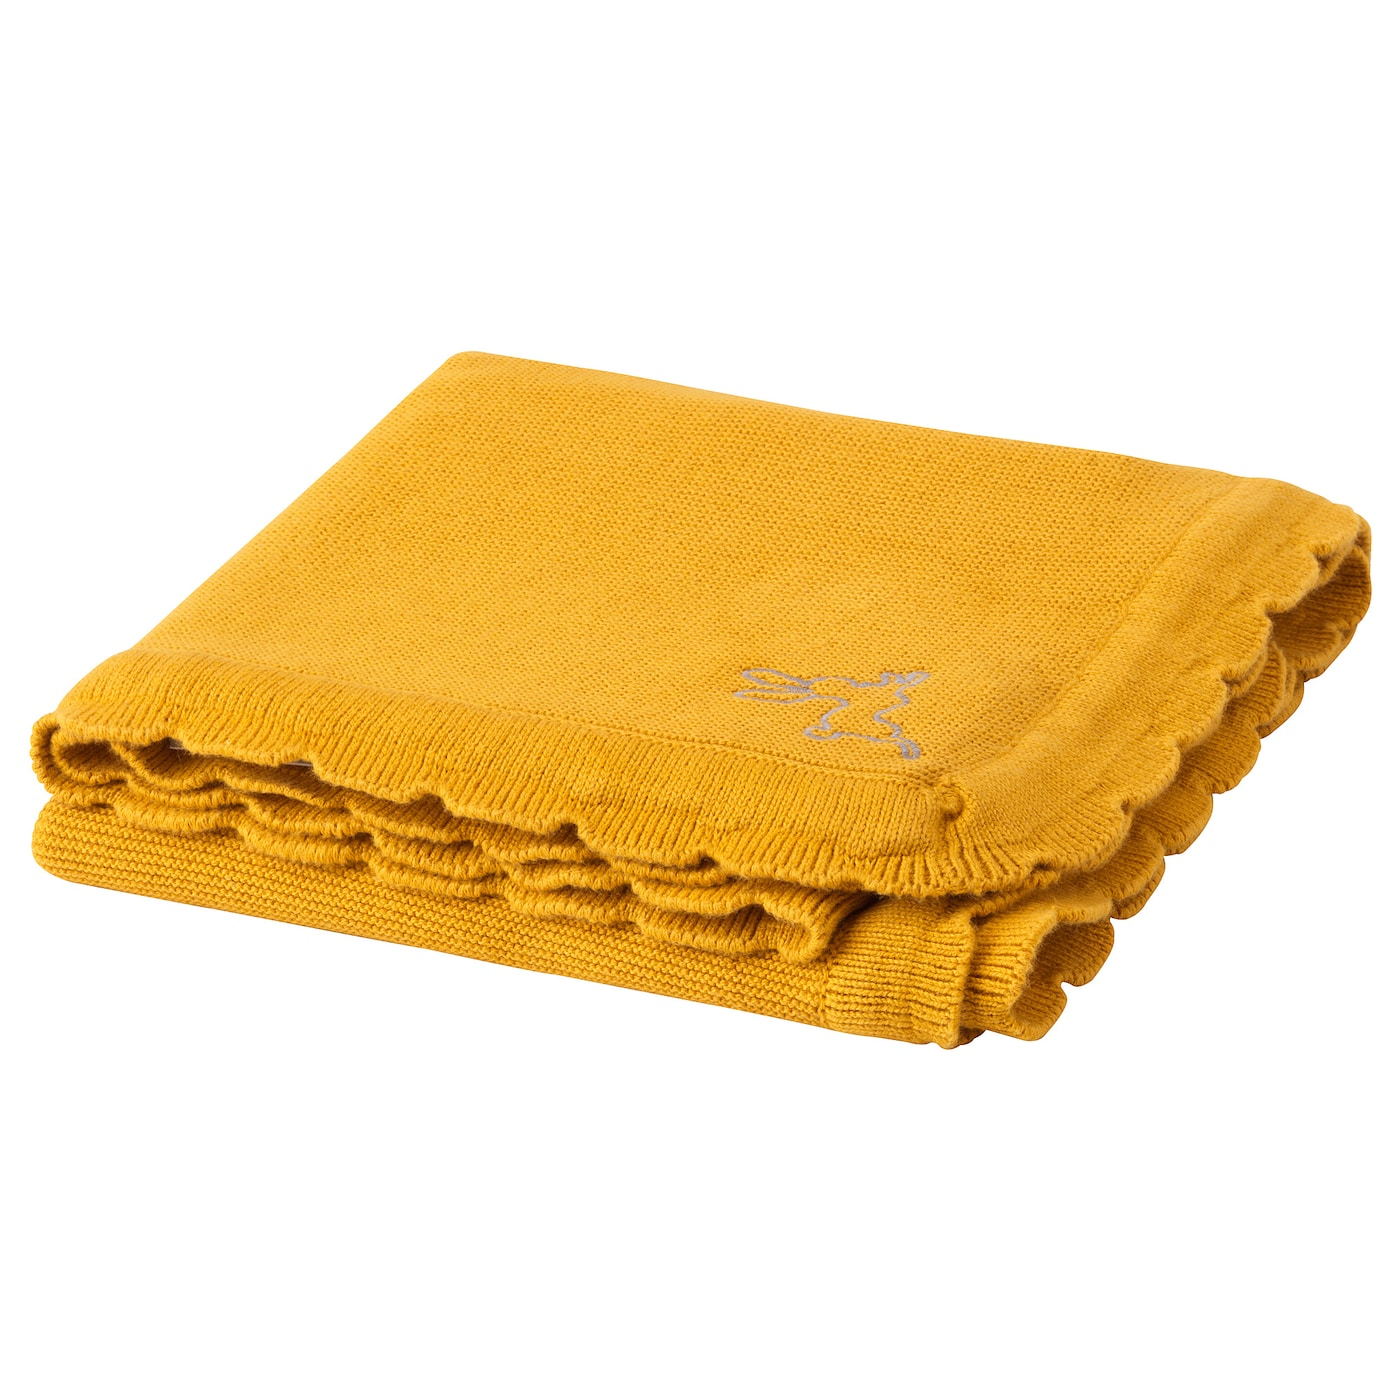 IKEA SOLGUL blanket Easy to clean; machine wash, warm (40°C).